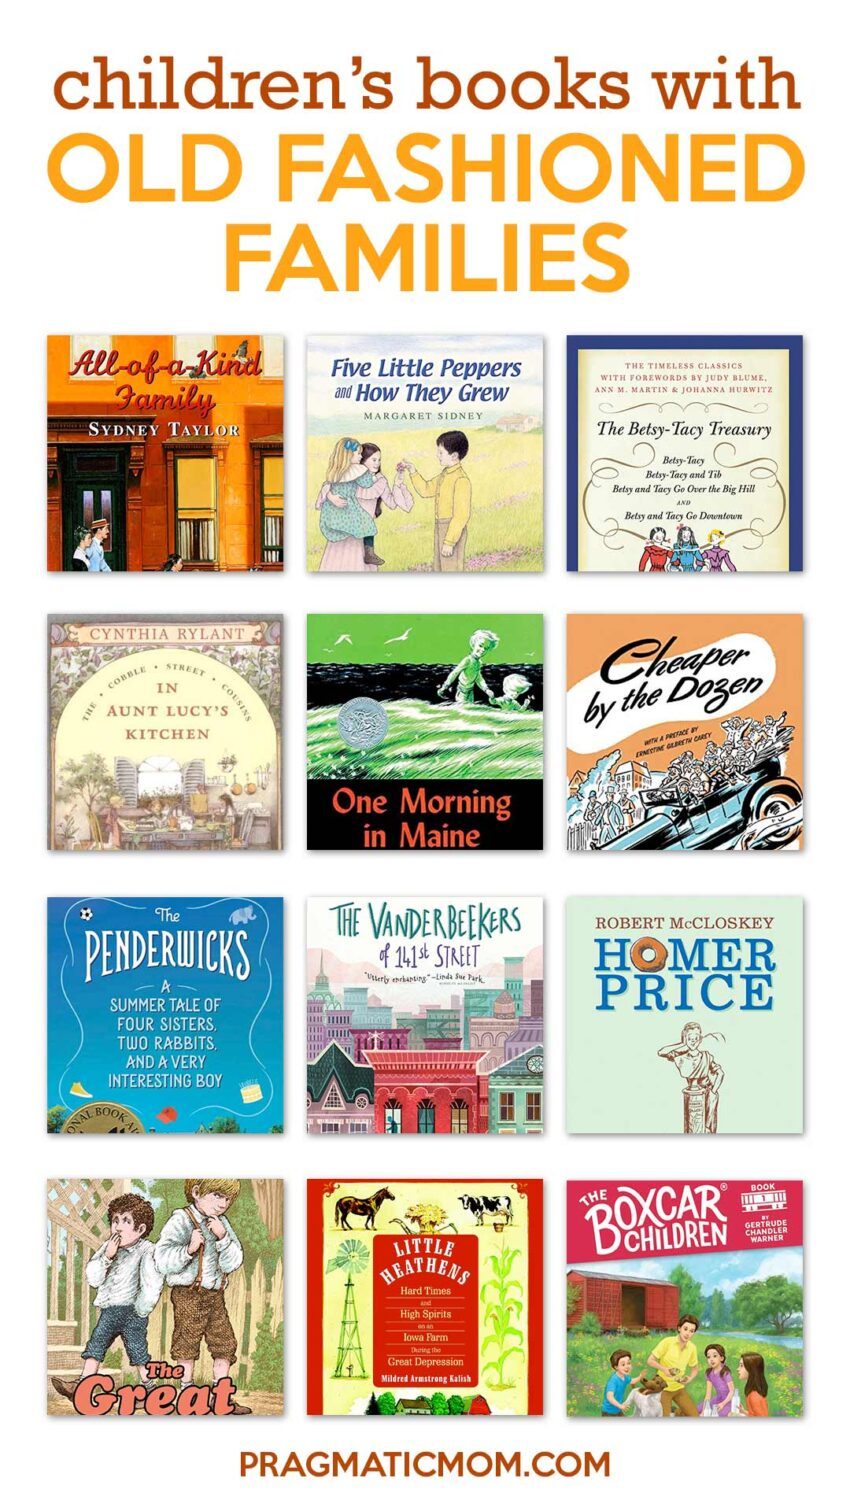 Best Old Fashioned Families in Children's Books